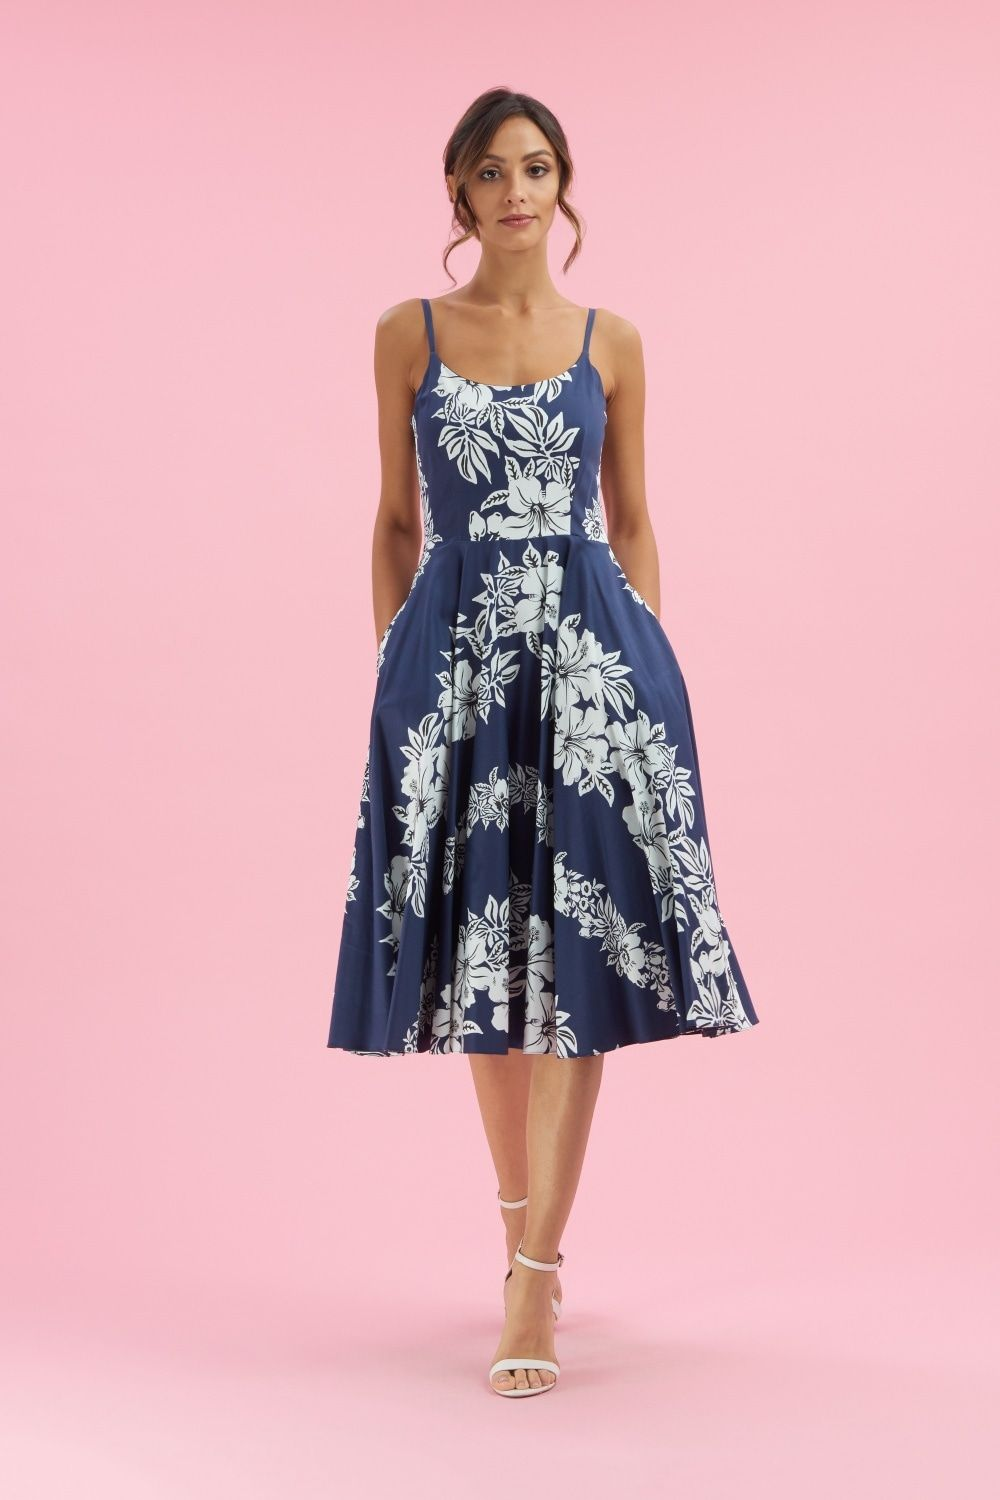 10 Dresses To Wear To A Summer Wedding Equally Wed Midi Swing Dress Dresses To Wear To A Wedding Dresses [ 1500 x 1000 Pixel ]